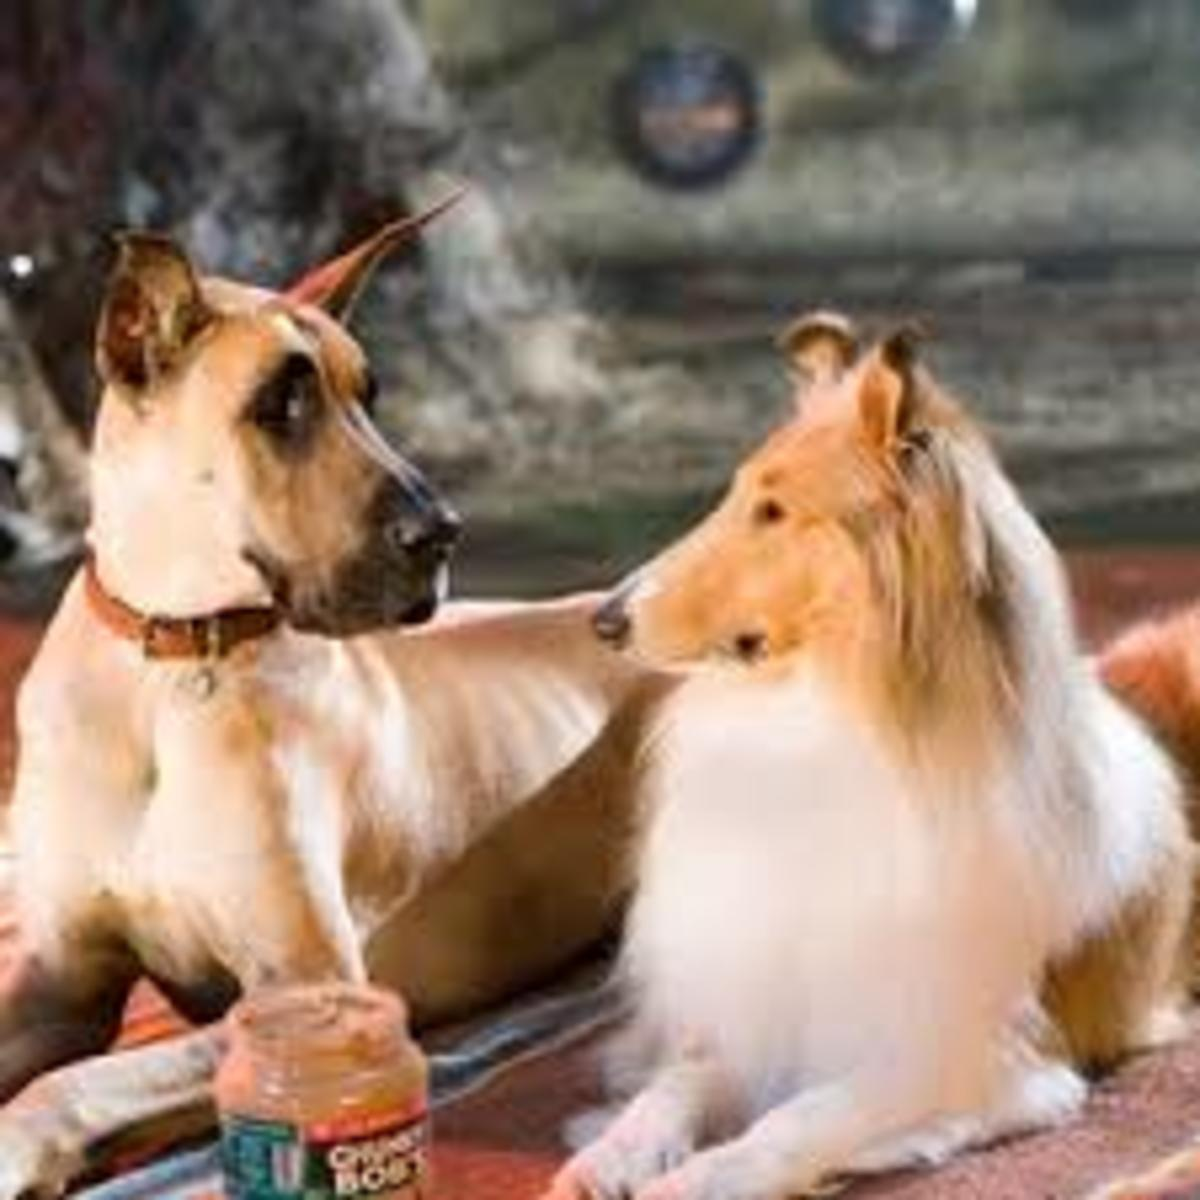 The dogs, Marmaduke and Jezebel in Marmaduke the movie.